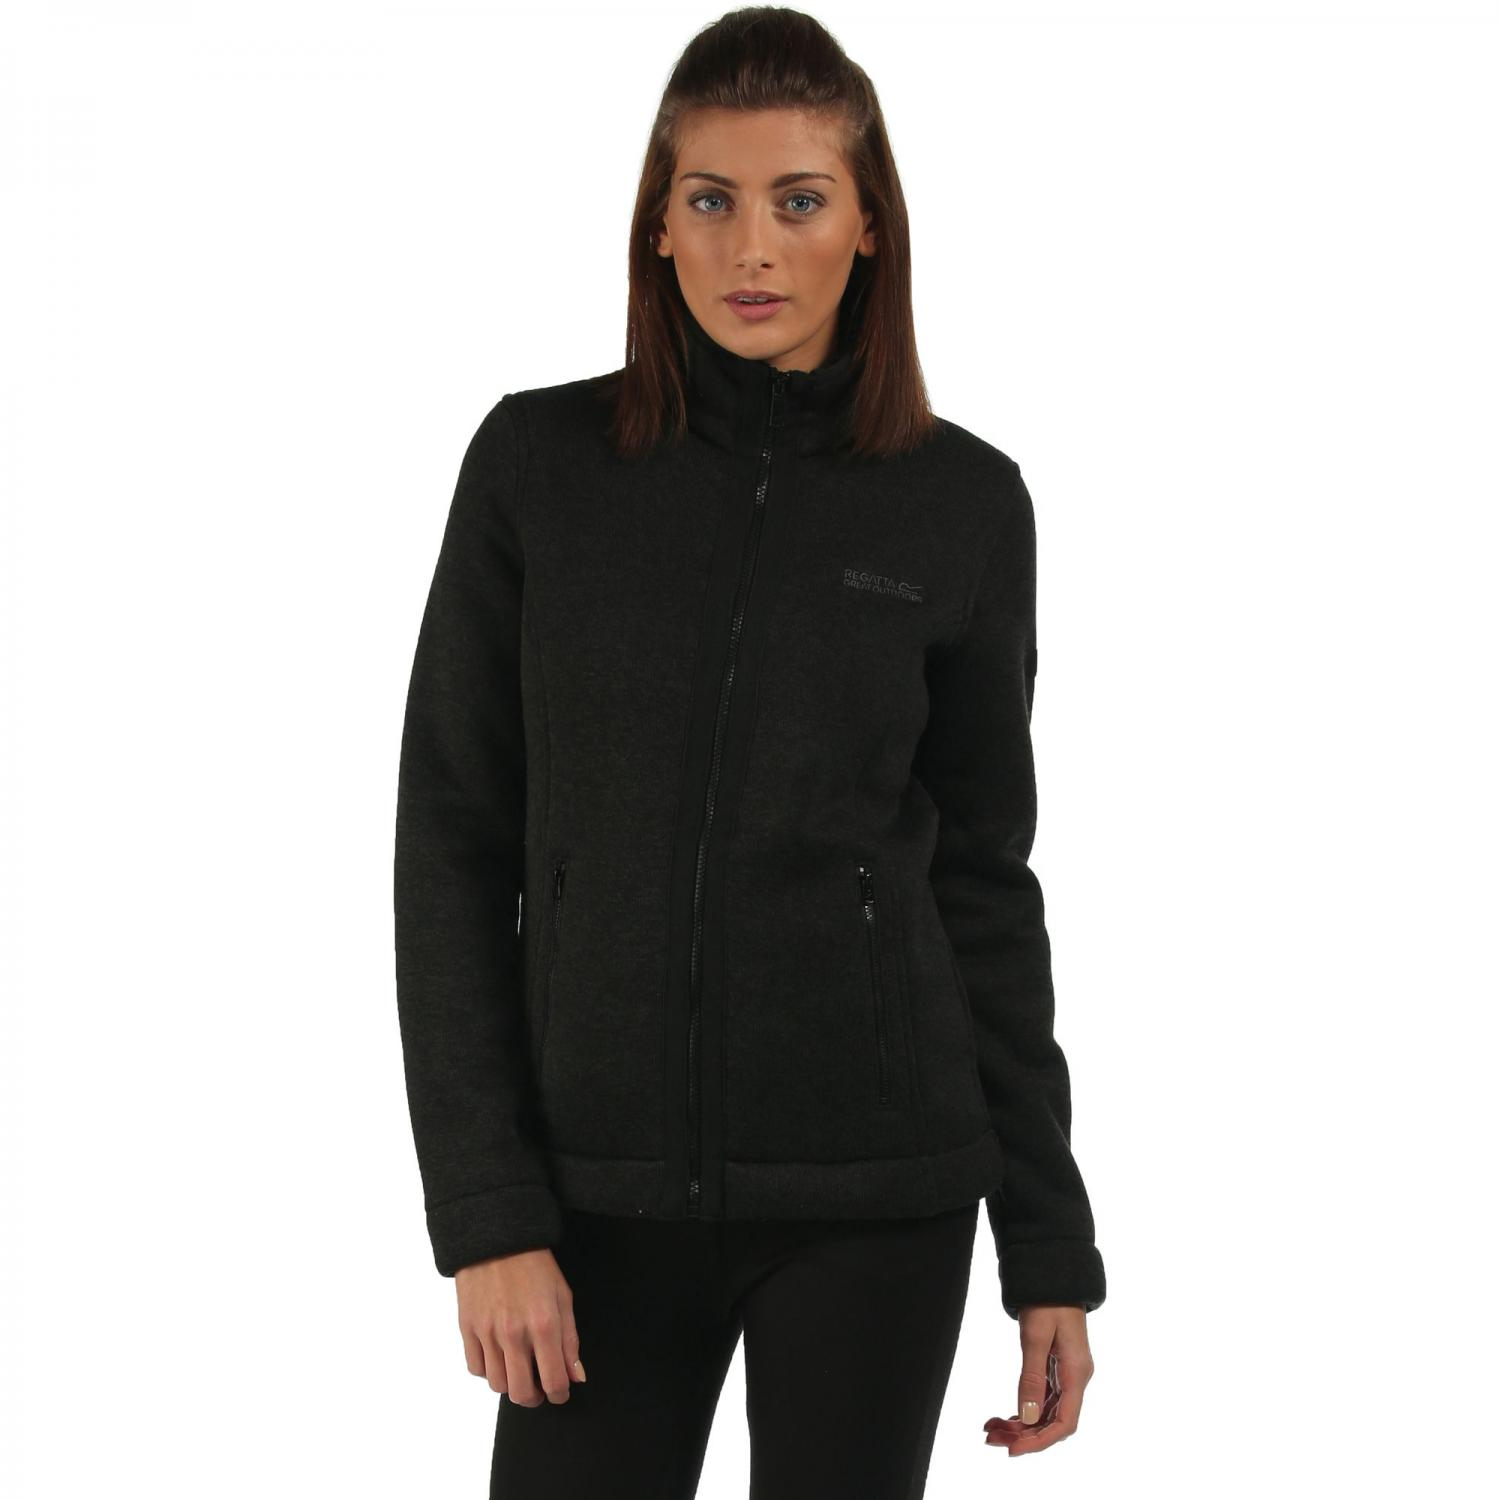 Ranita Fleece Black